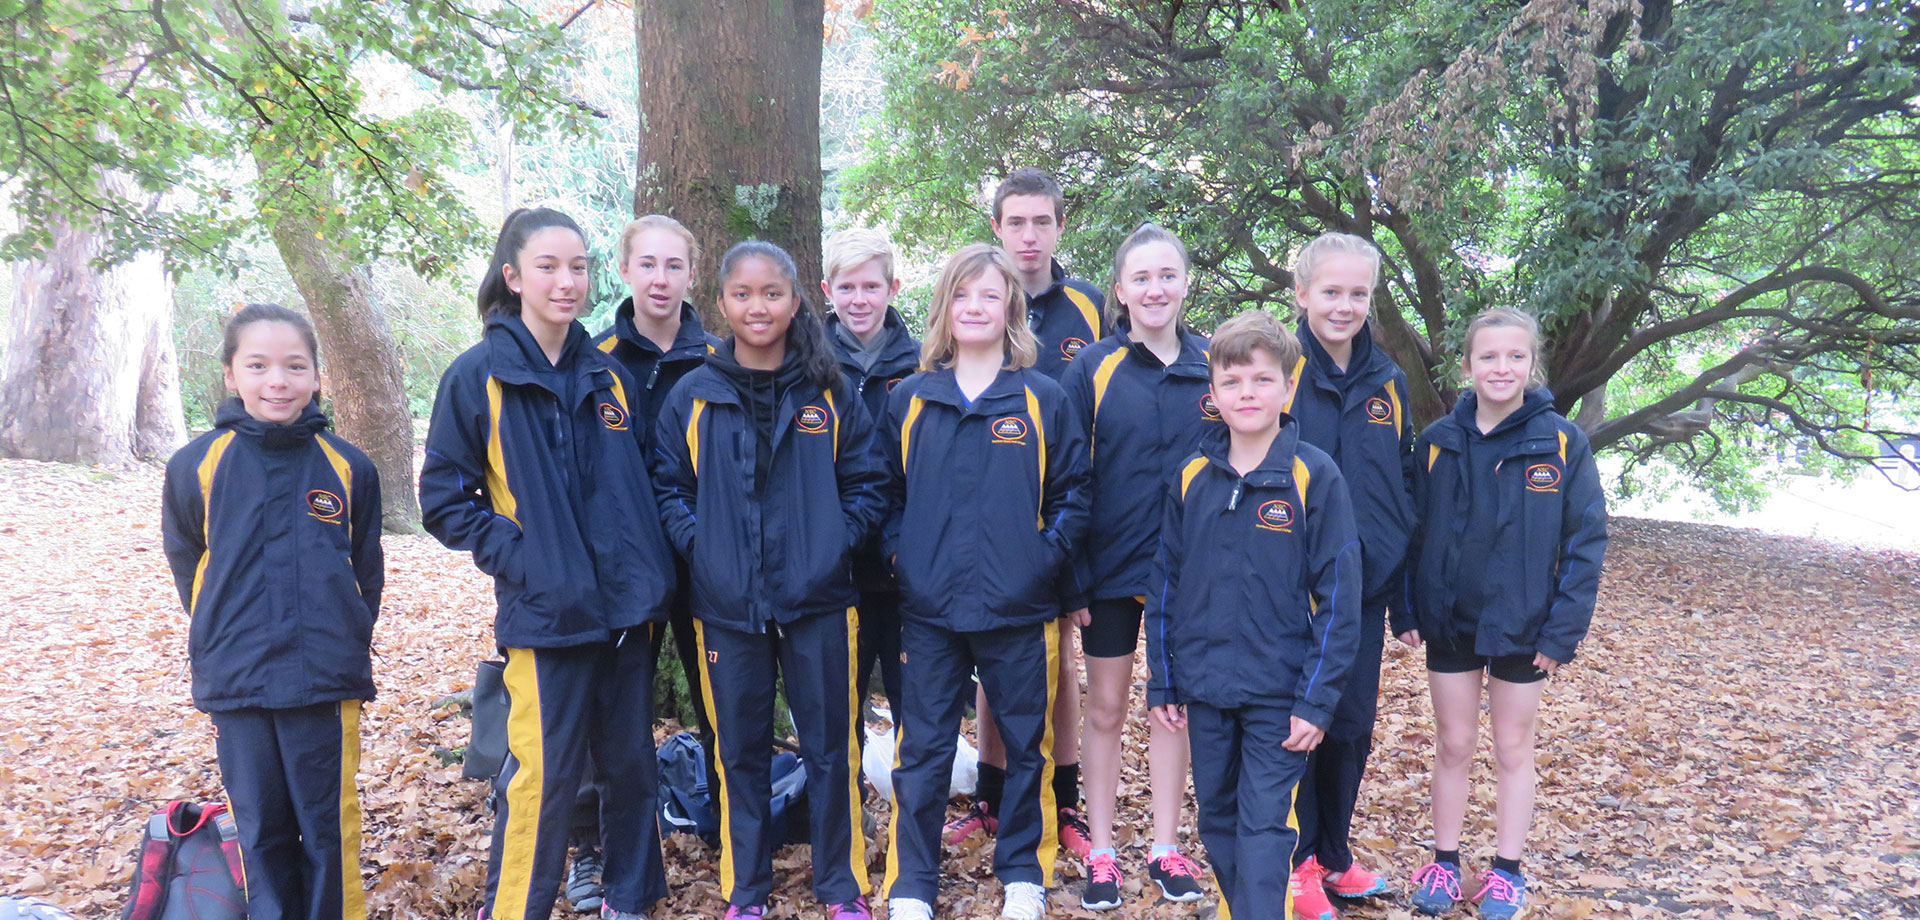 Friendly welcome from one of our cross country groups